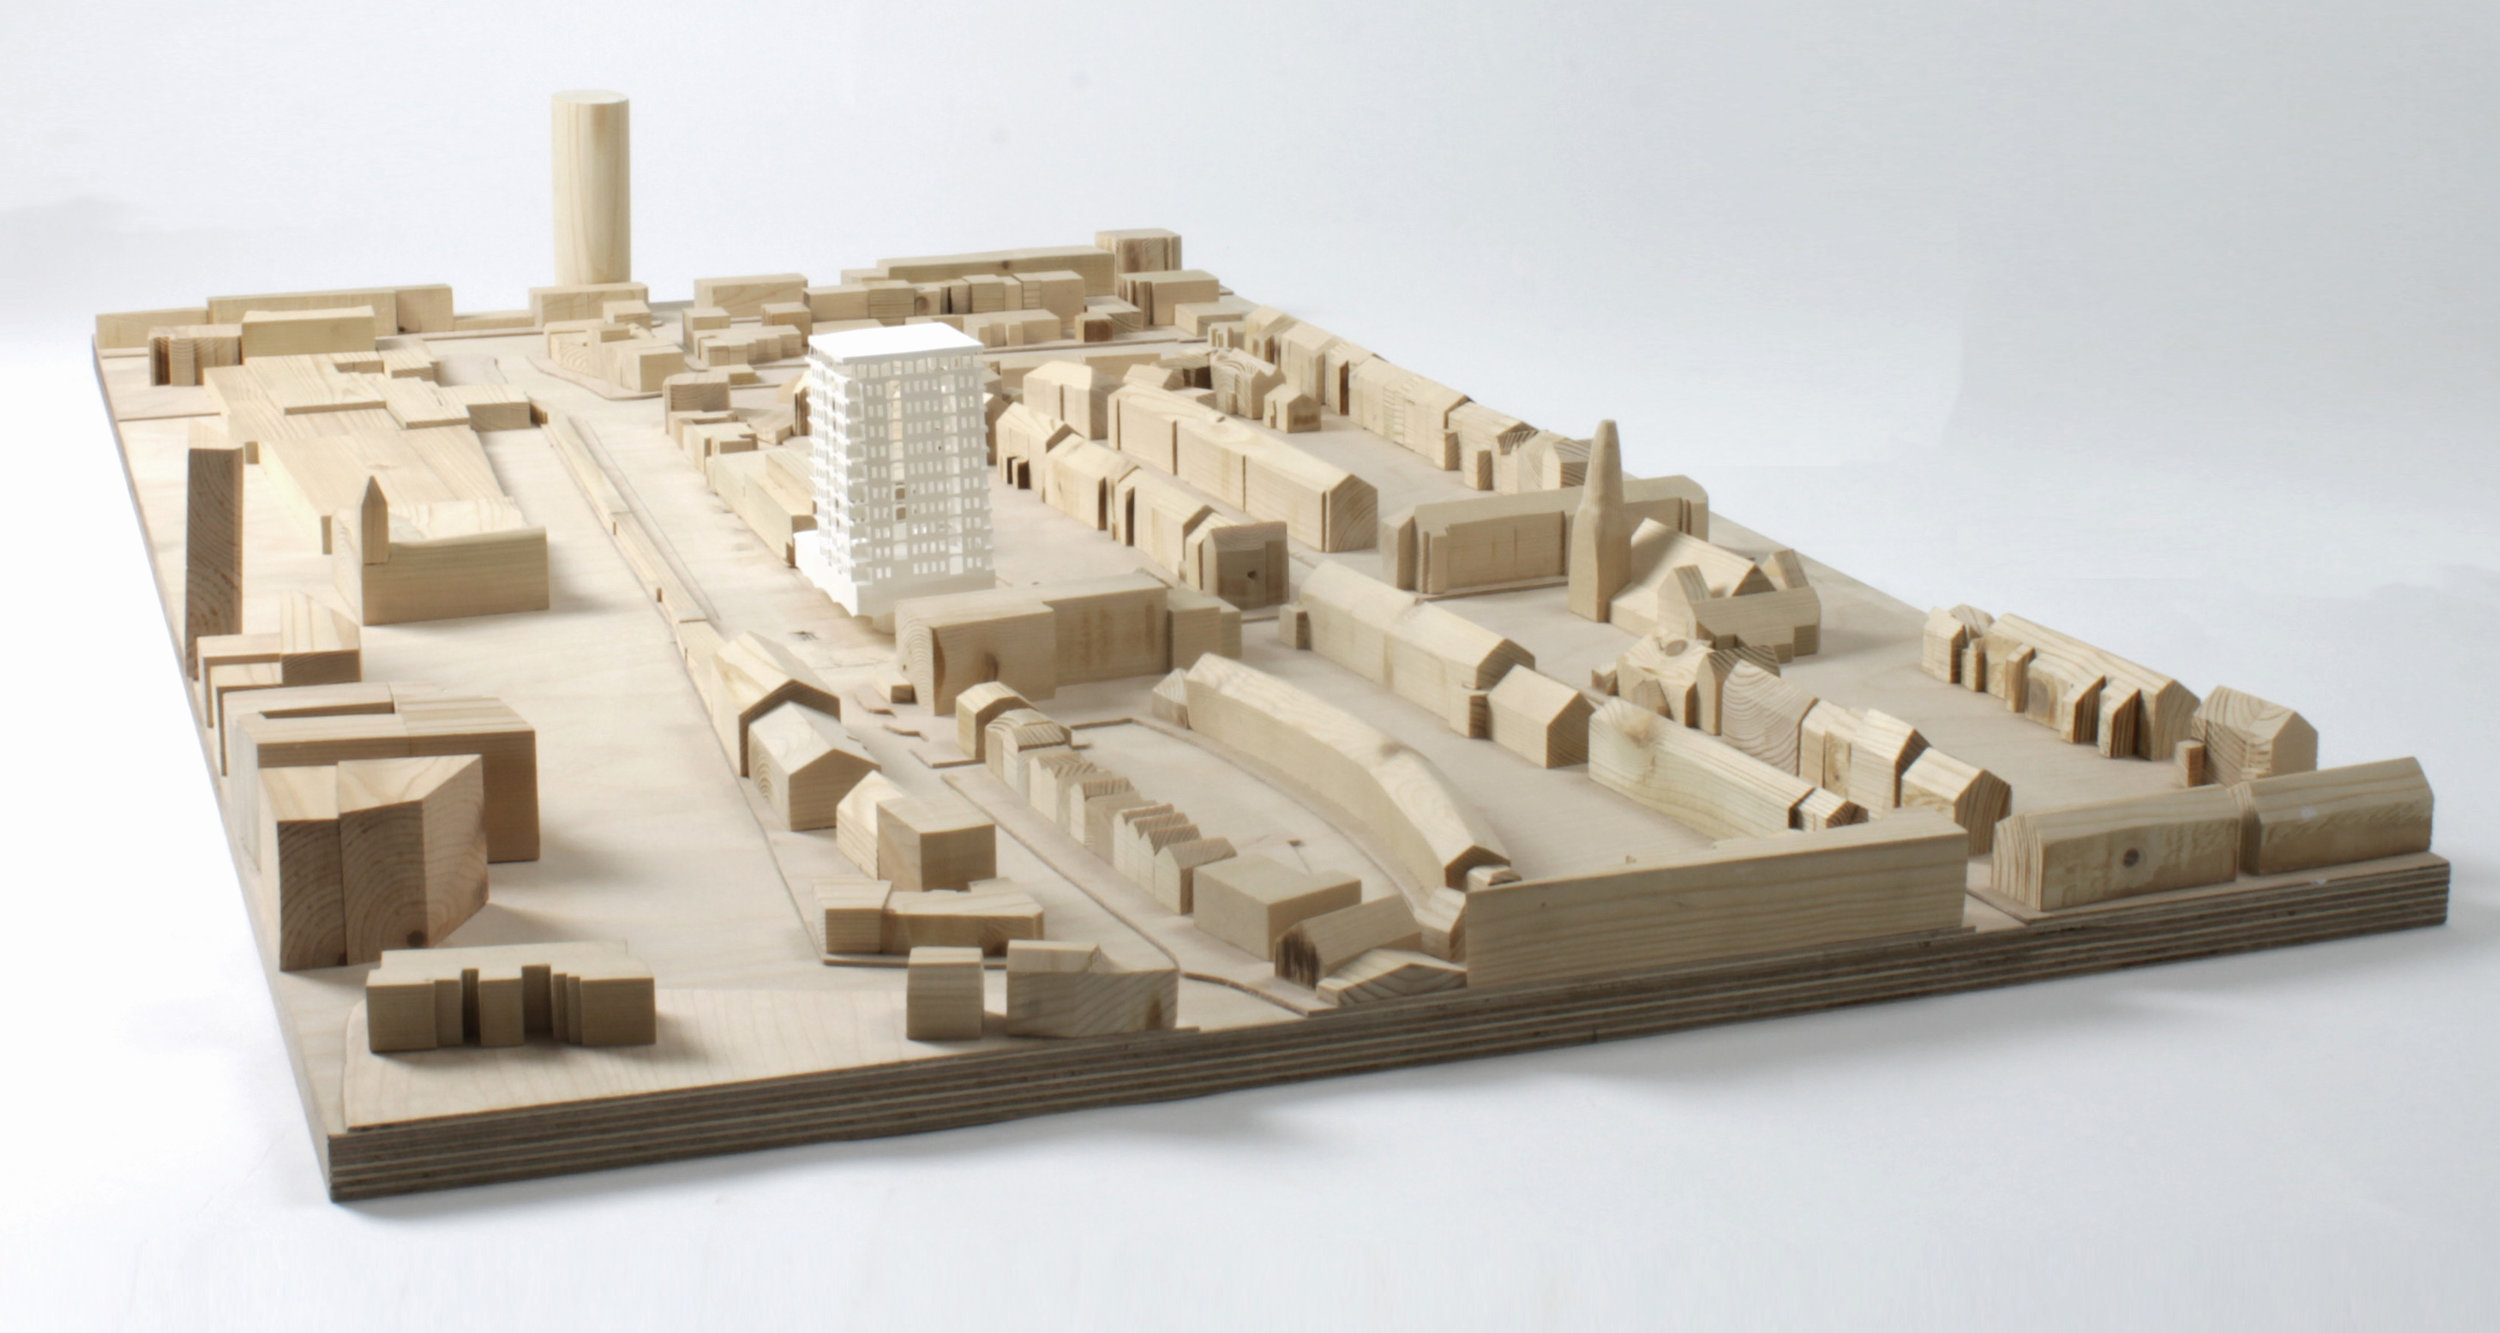 Site Model, 1 to 500 scale